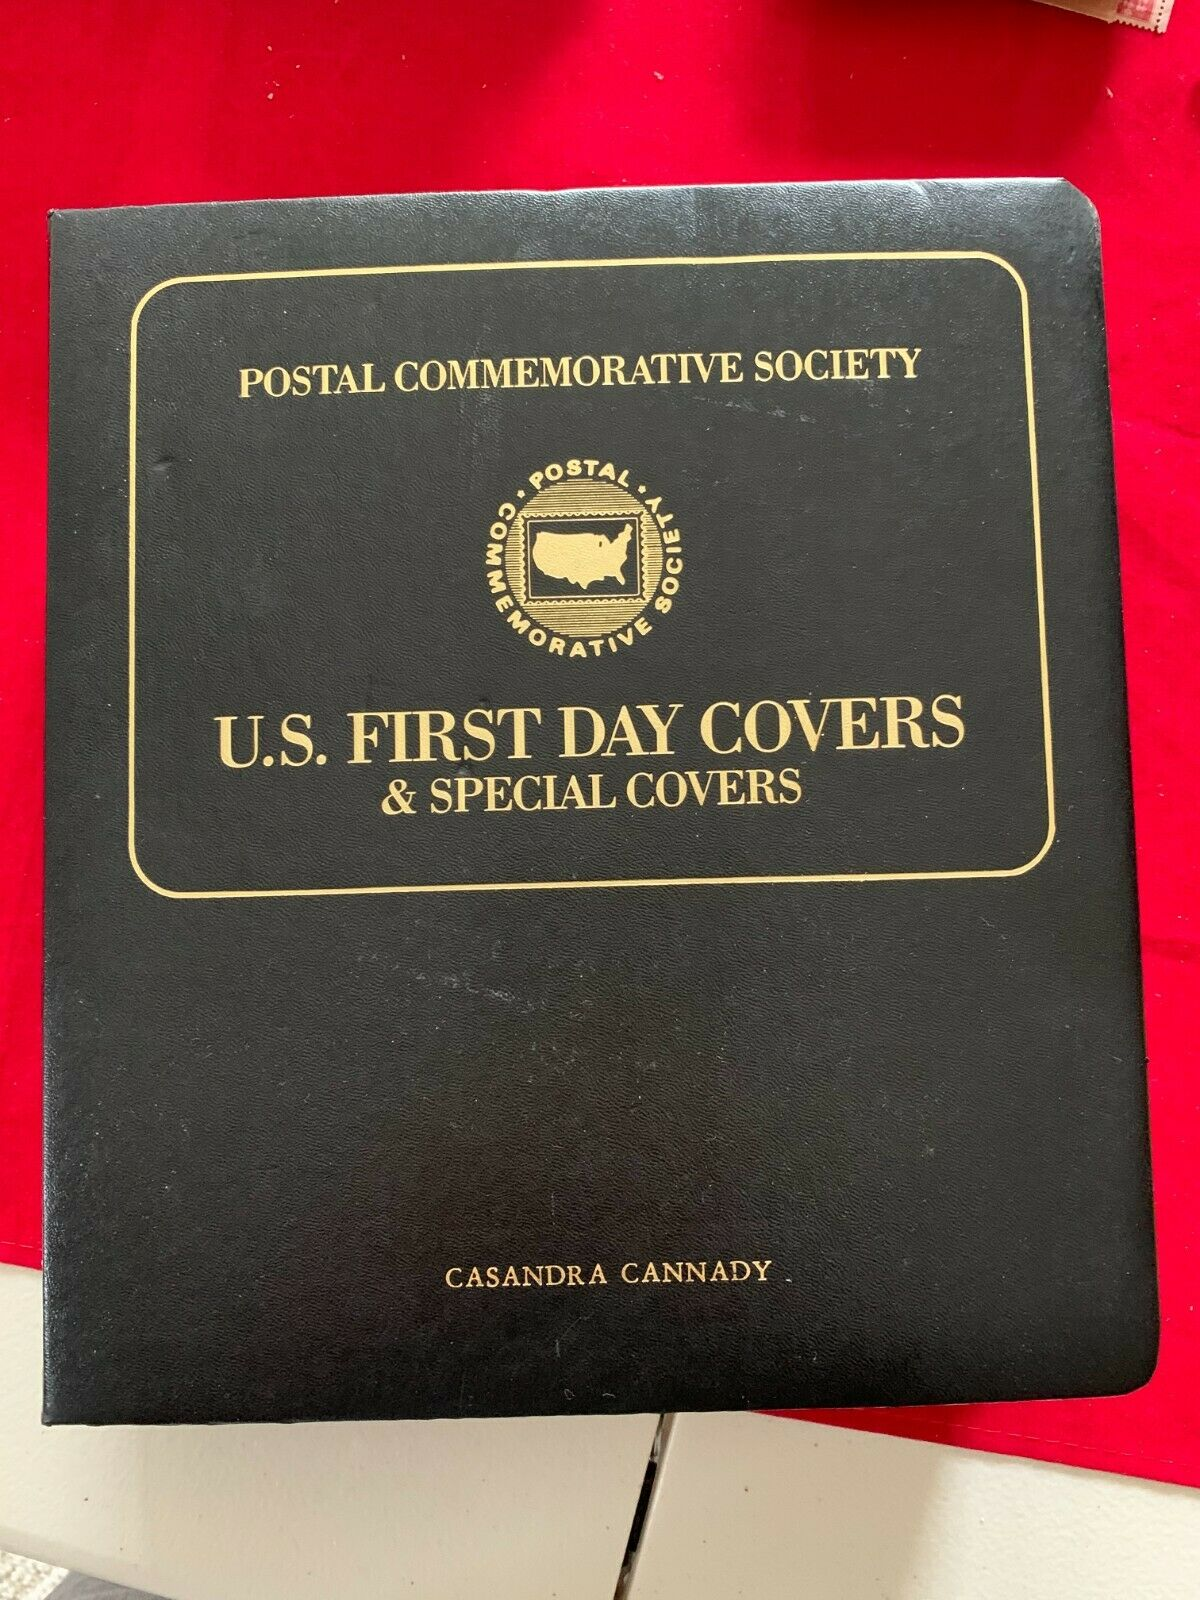 Us 1994-1995 Stamp First Day Cover In 1 Album 98 Covers - $38.00